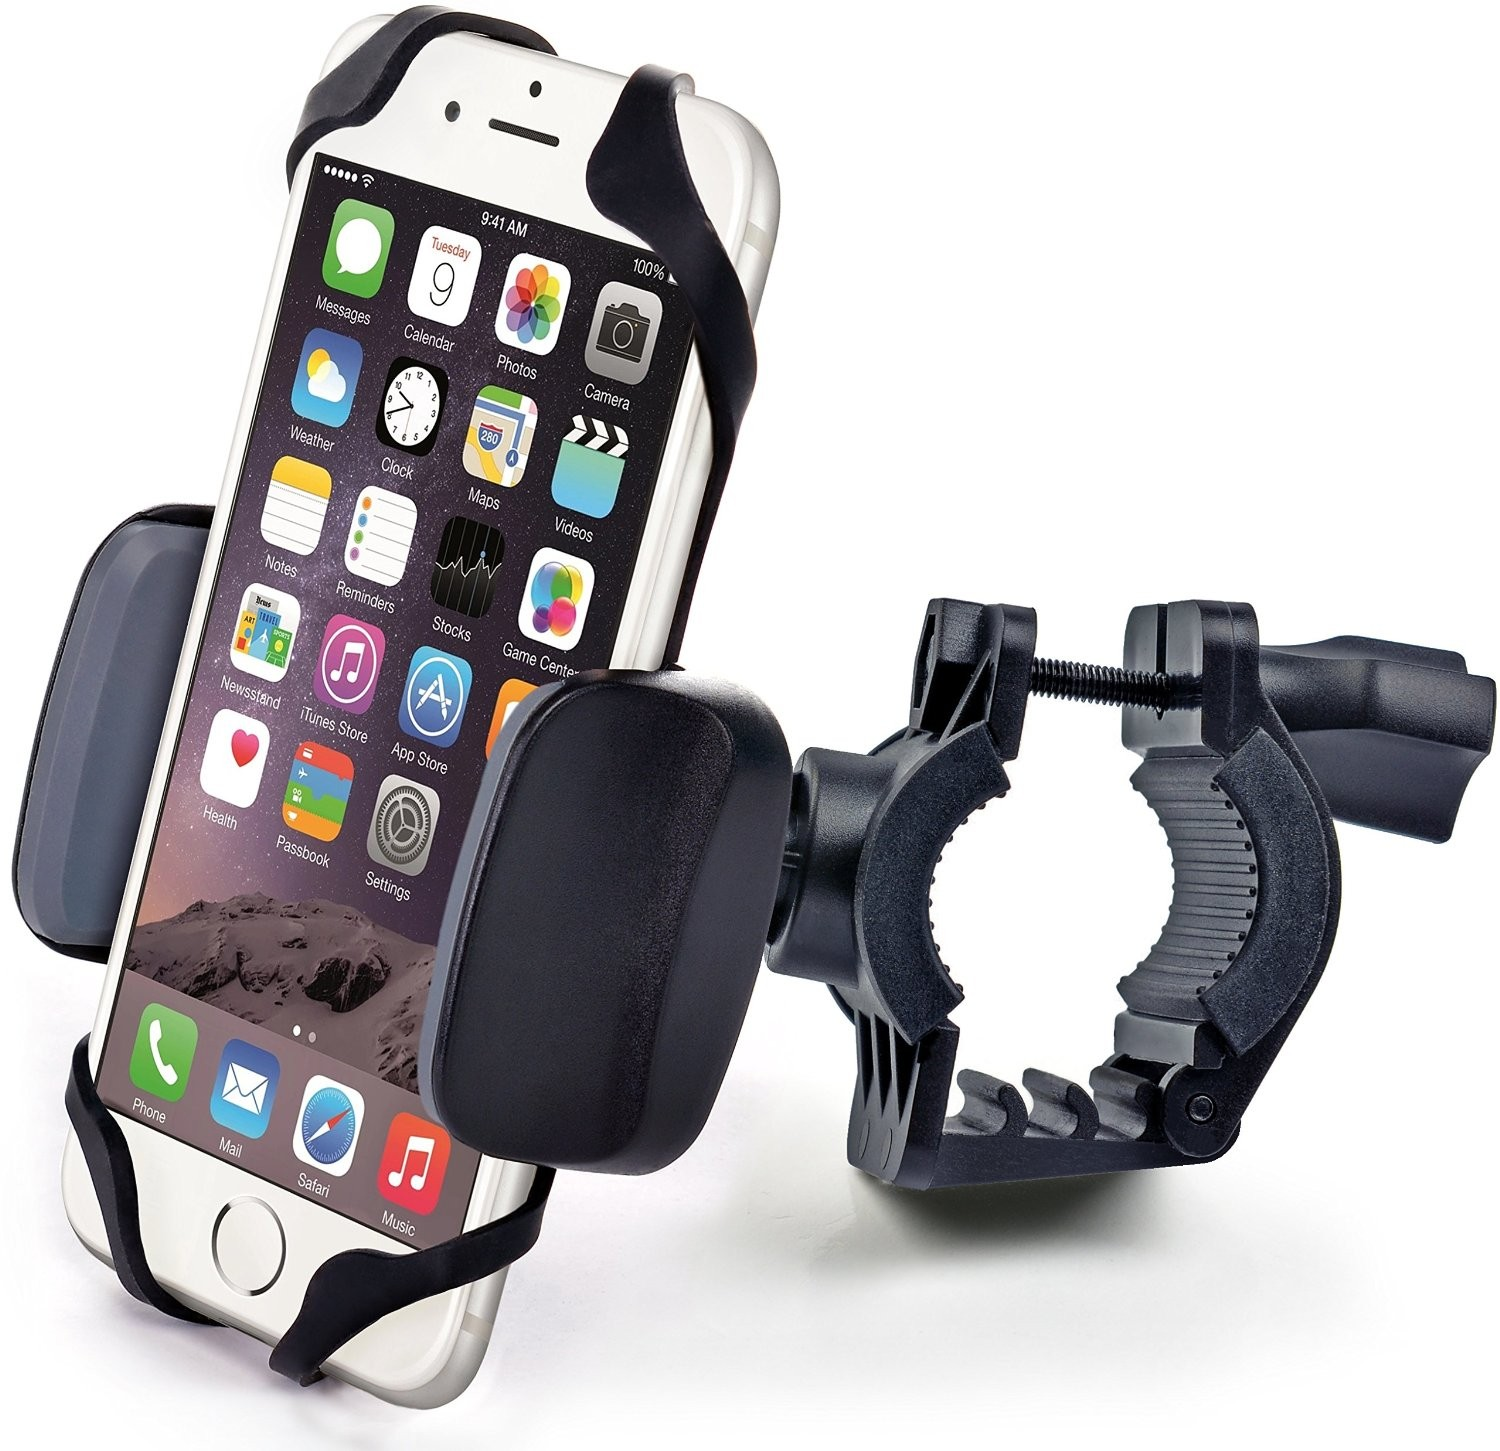 7897826c9e1 Bike Phone Holder For A Smartphone - Aid4Disabled